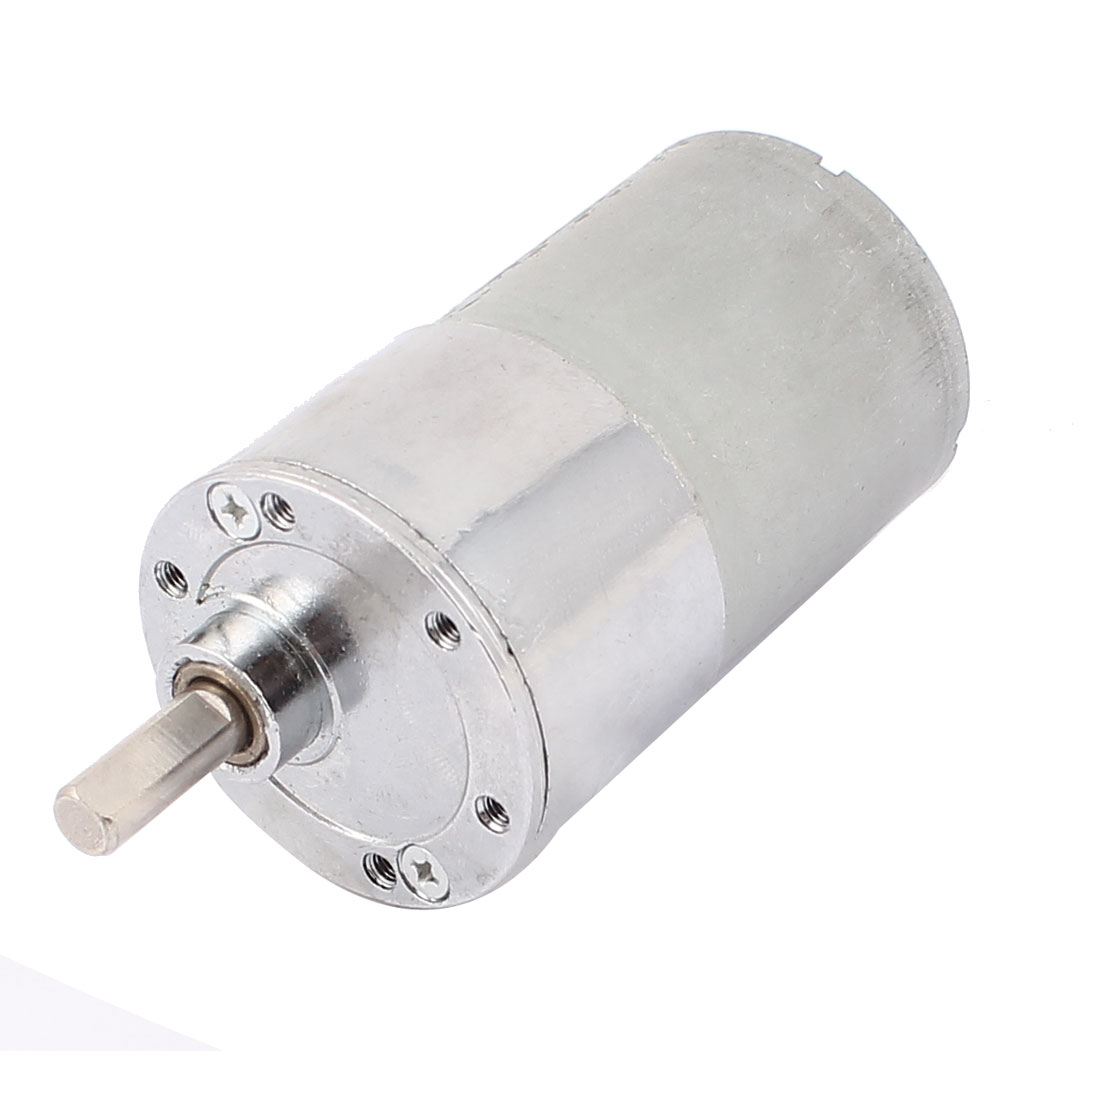 DC 12V 150RPM 6mm Shaft Dia Speed Reducing Gear Box Motor